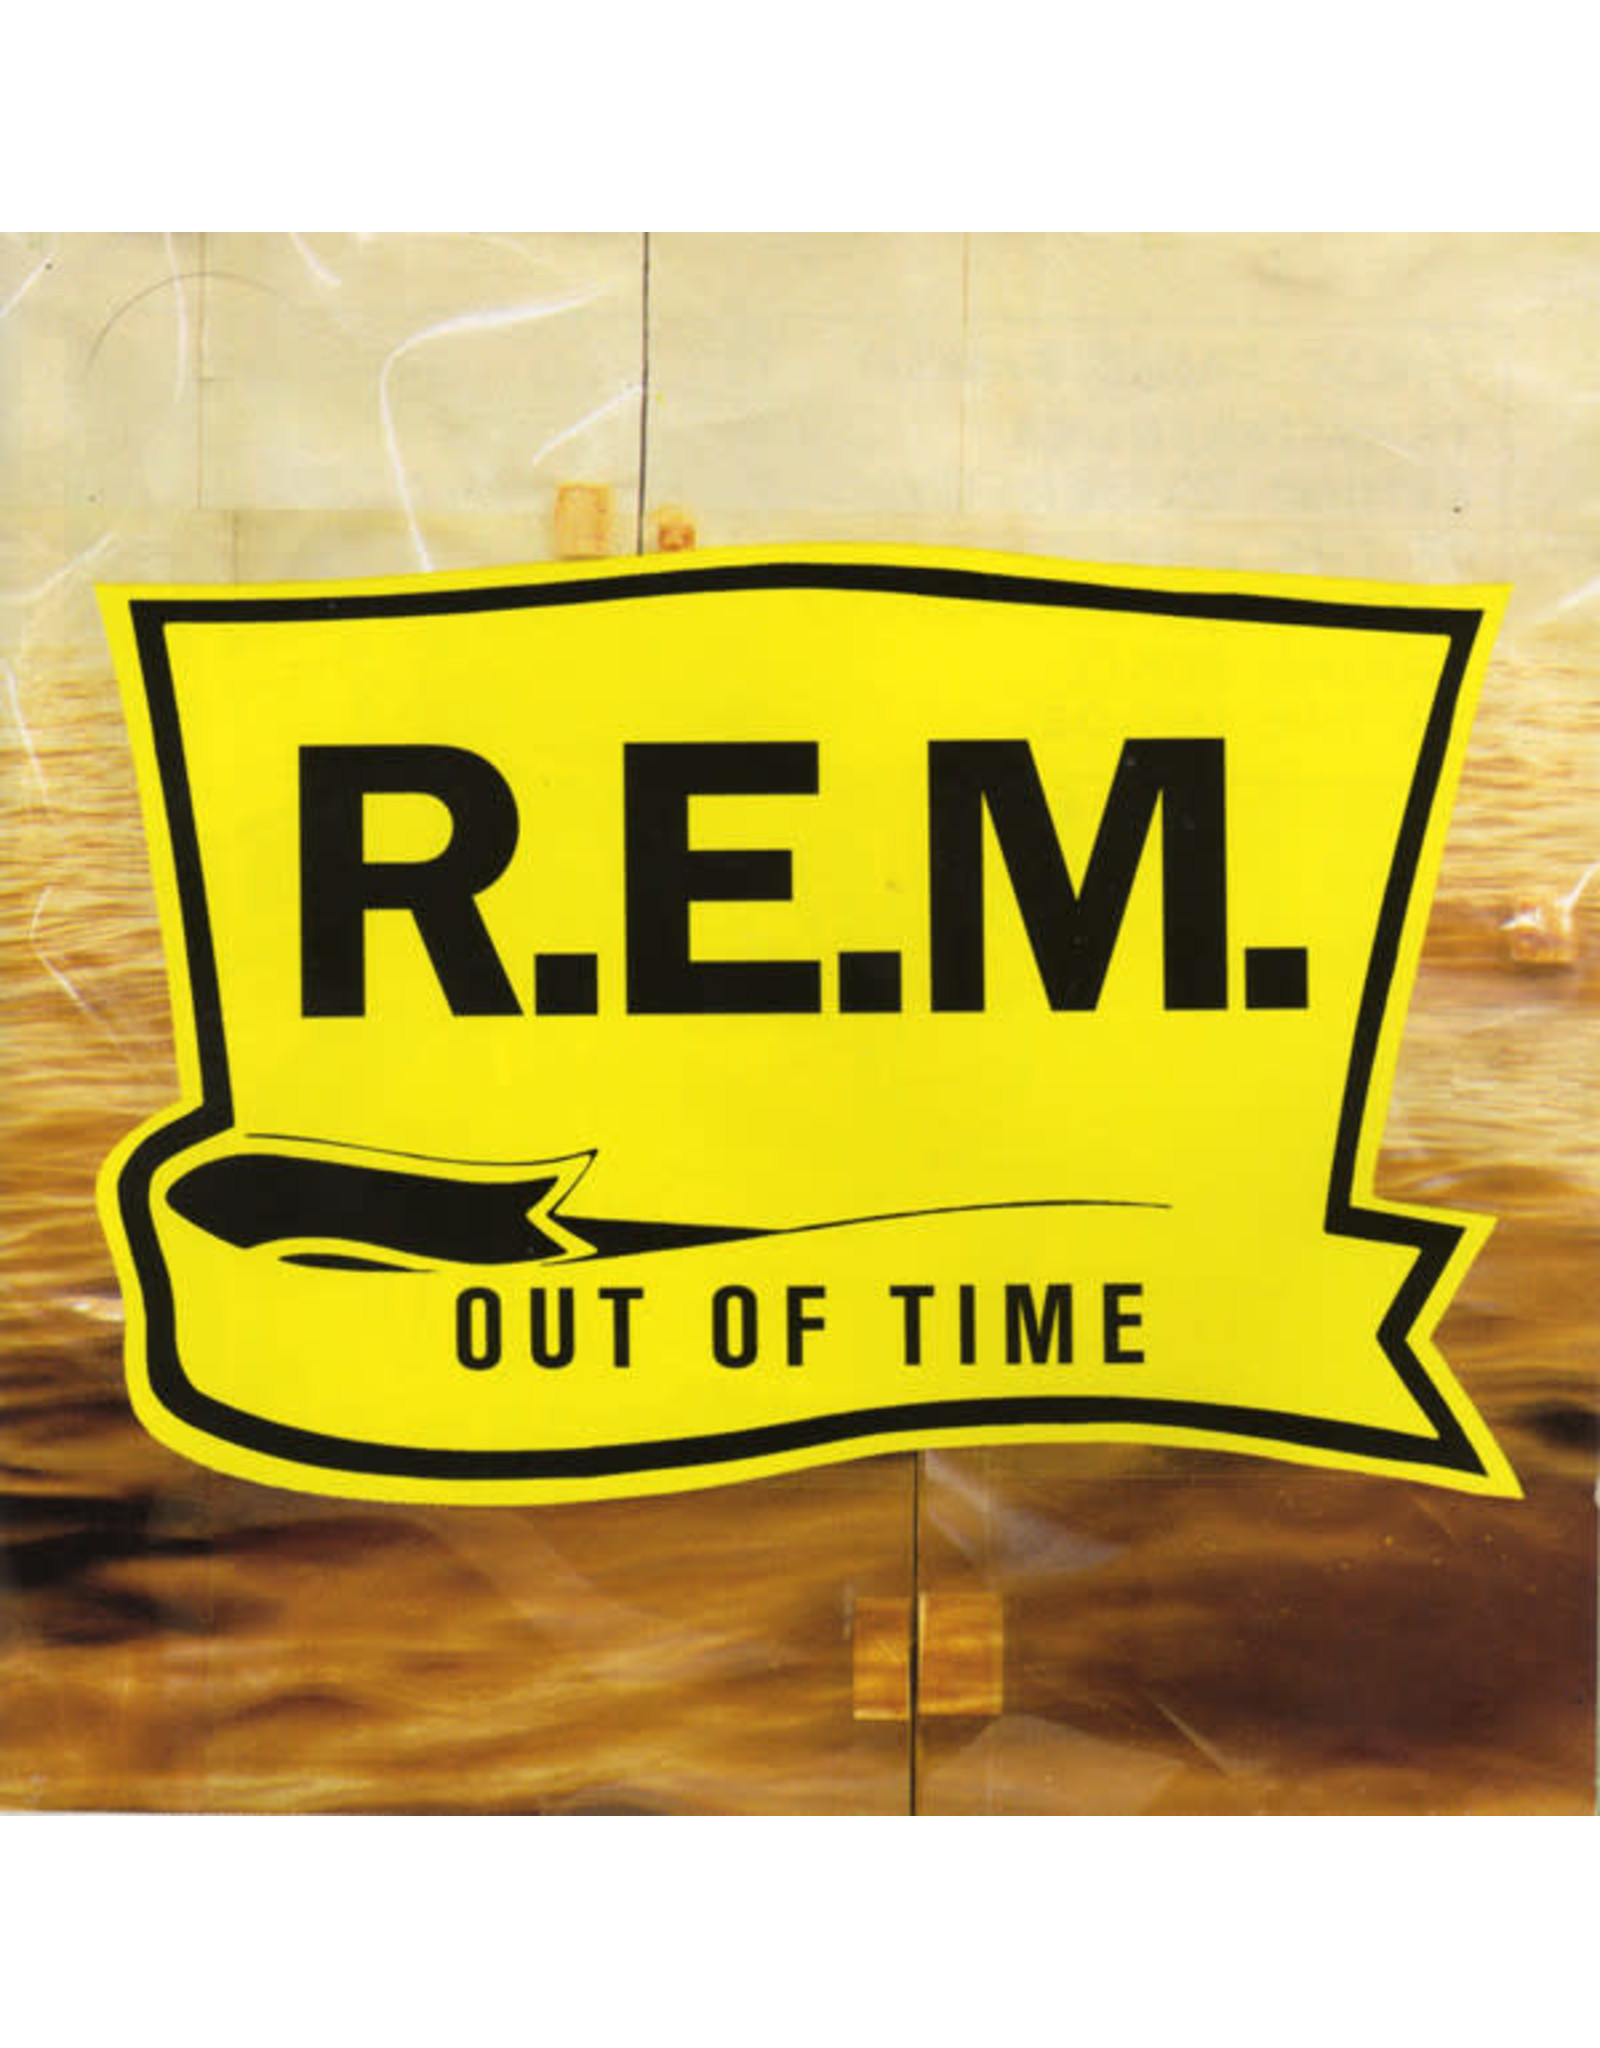 R.E.M. - Out of Time (25th anniversary) LP